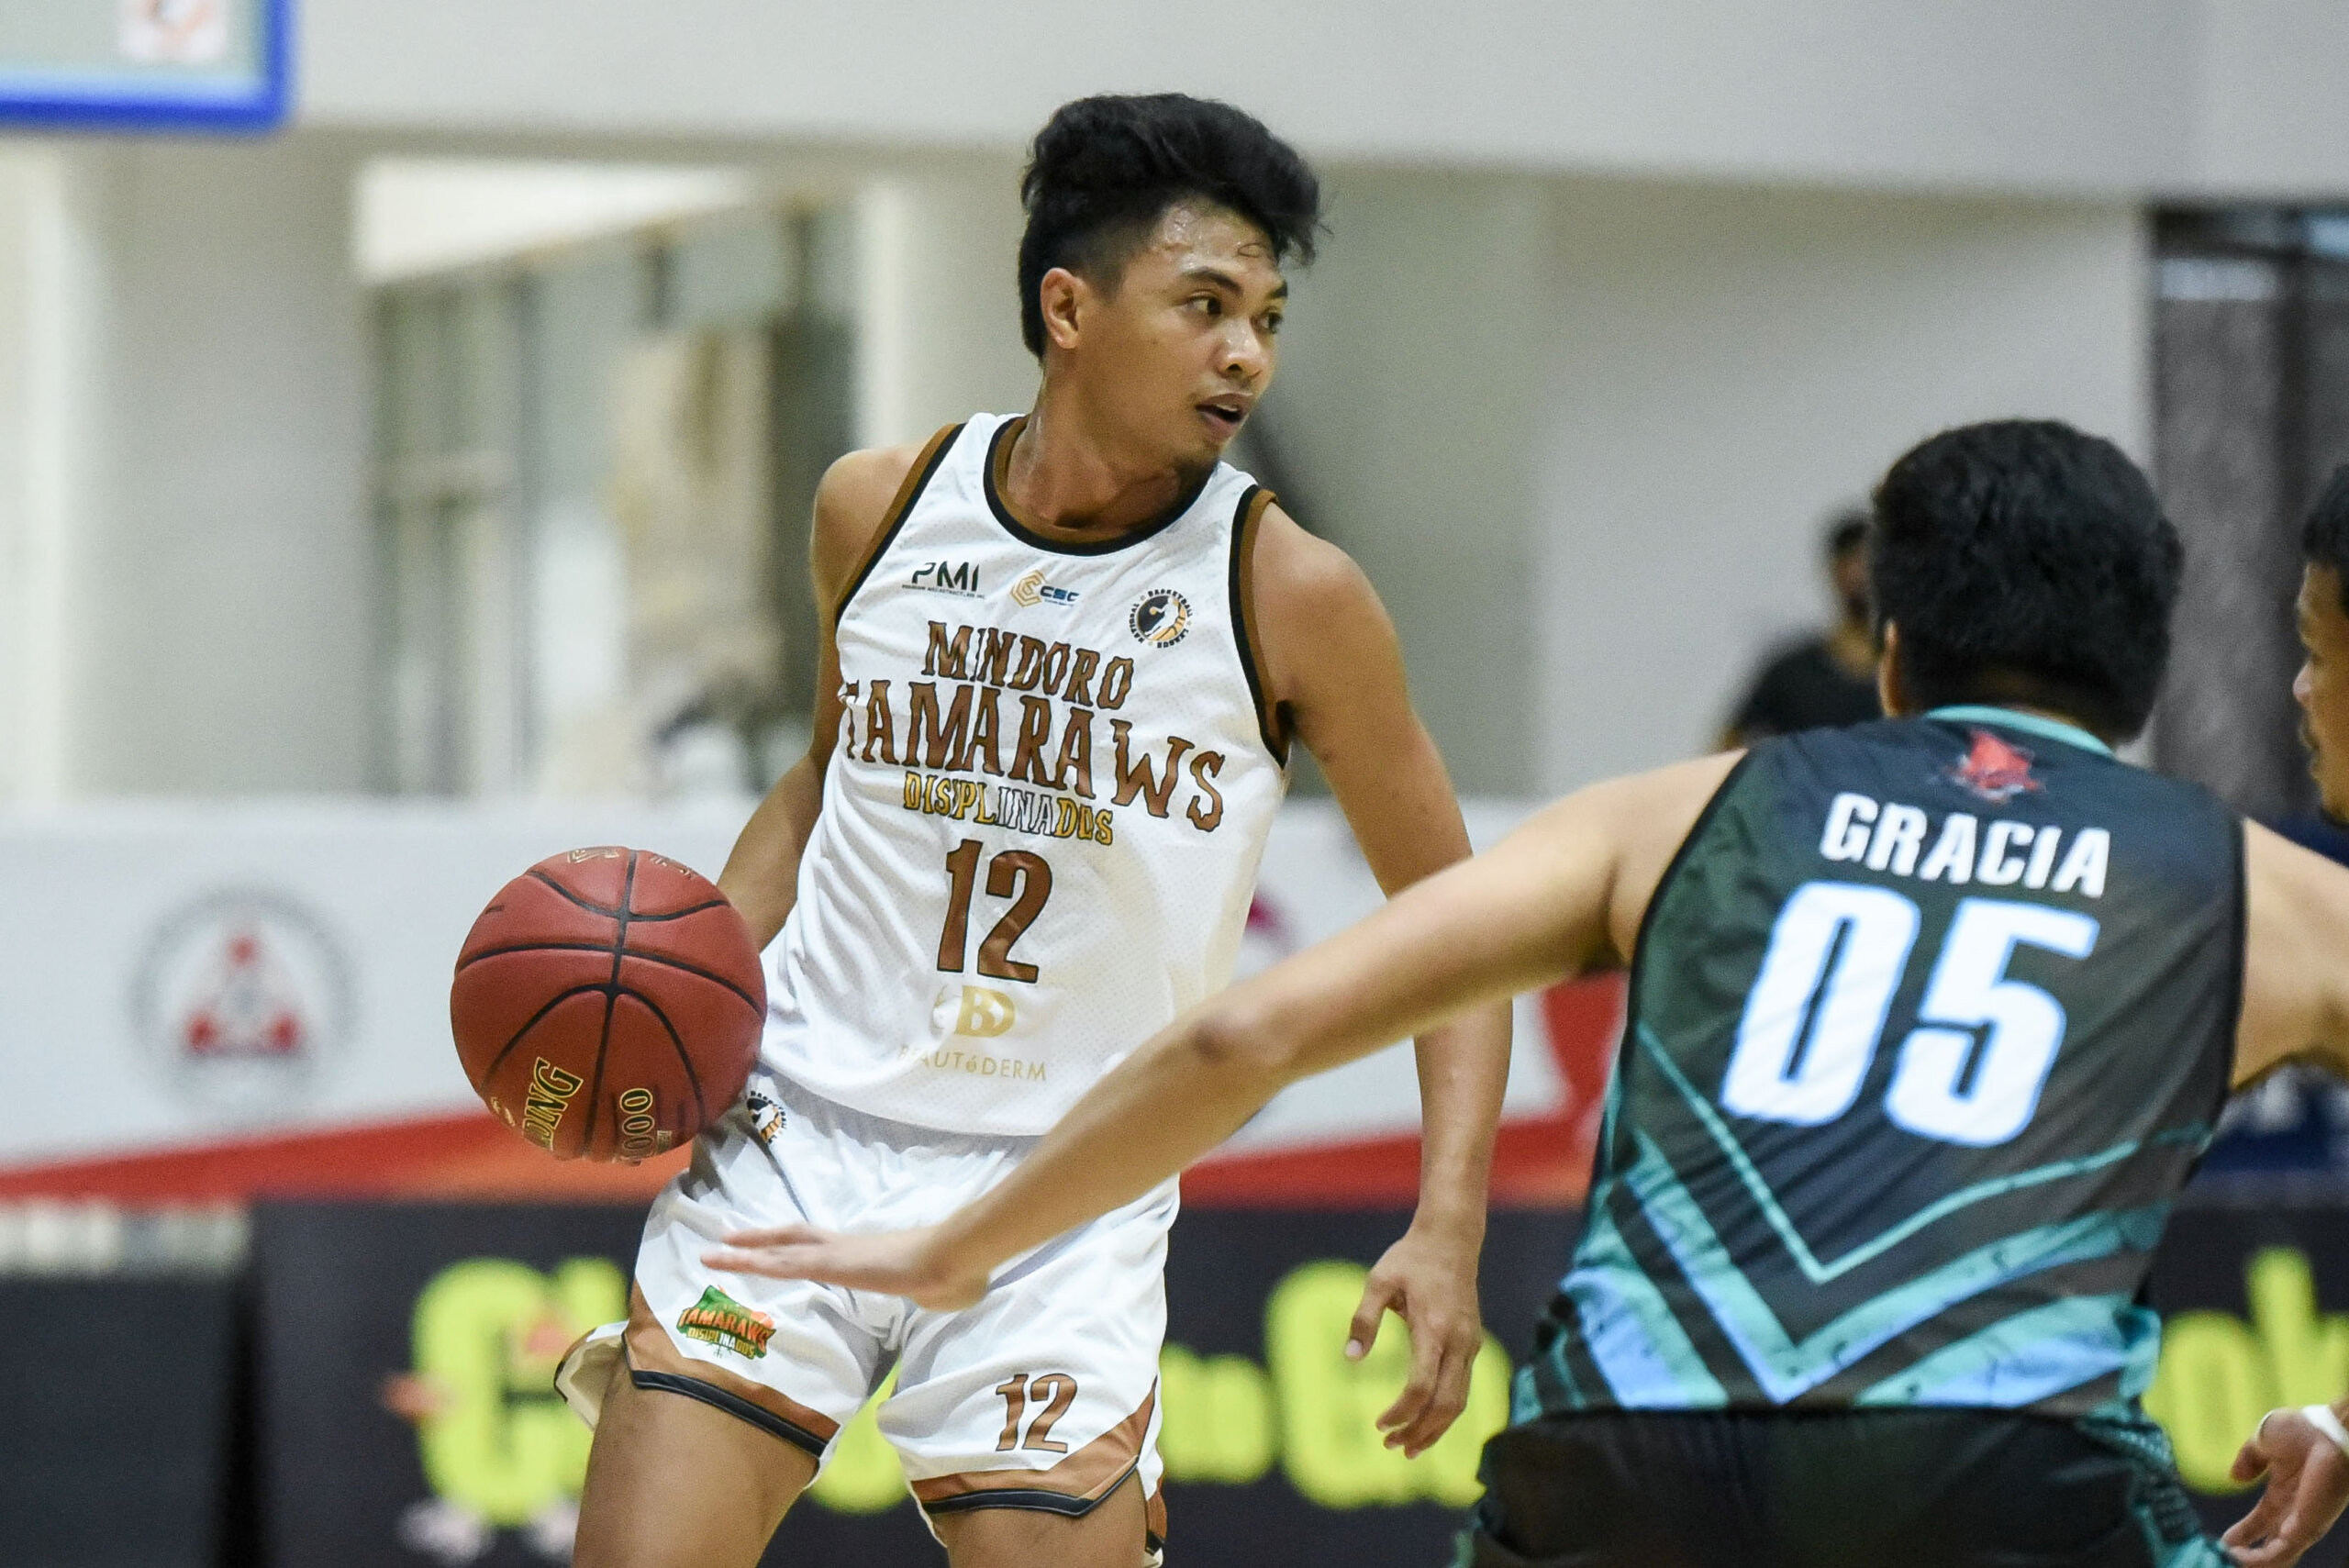 2021-Chooks-to-Go-NBL-Mindoro-def-Zamboanga-Jhon-Caspe-scaled La Union opens NBL redemption campaign with 30-point rout of Laguna Basketball NBL News  - philippine sports news